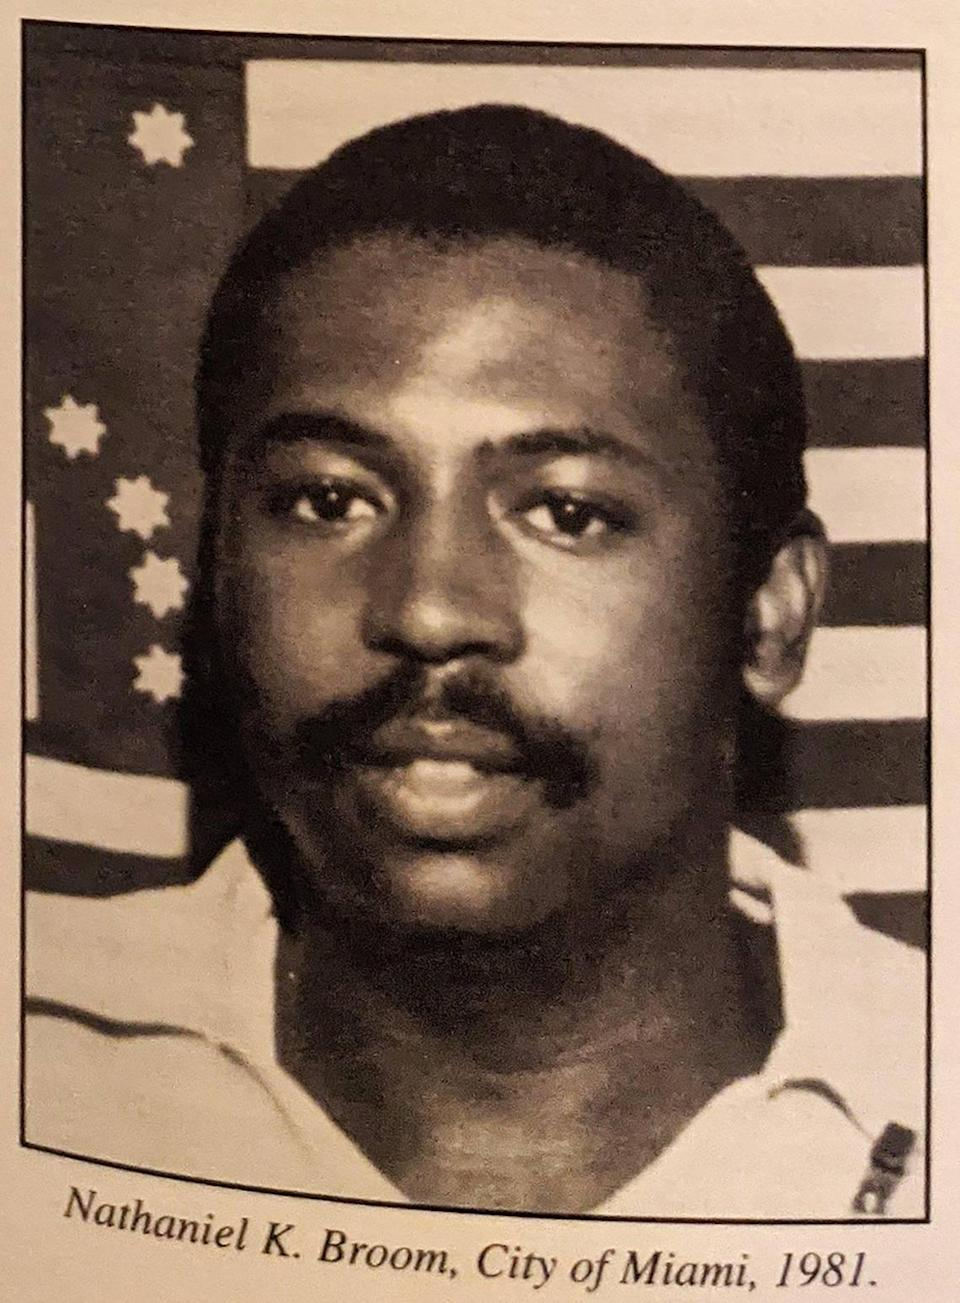 Miami, Florida, May 7 2021 - Nathaniel K Broom, killed in the line of duty in 1981. Somehow, the location of his remains became a mystery to Miami police. Now, 40 years later, a retired detective and her old boss believe Broom's grave has finally been found.